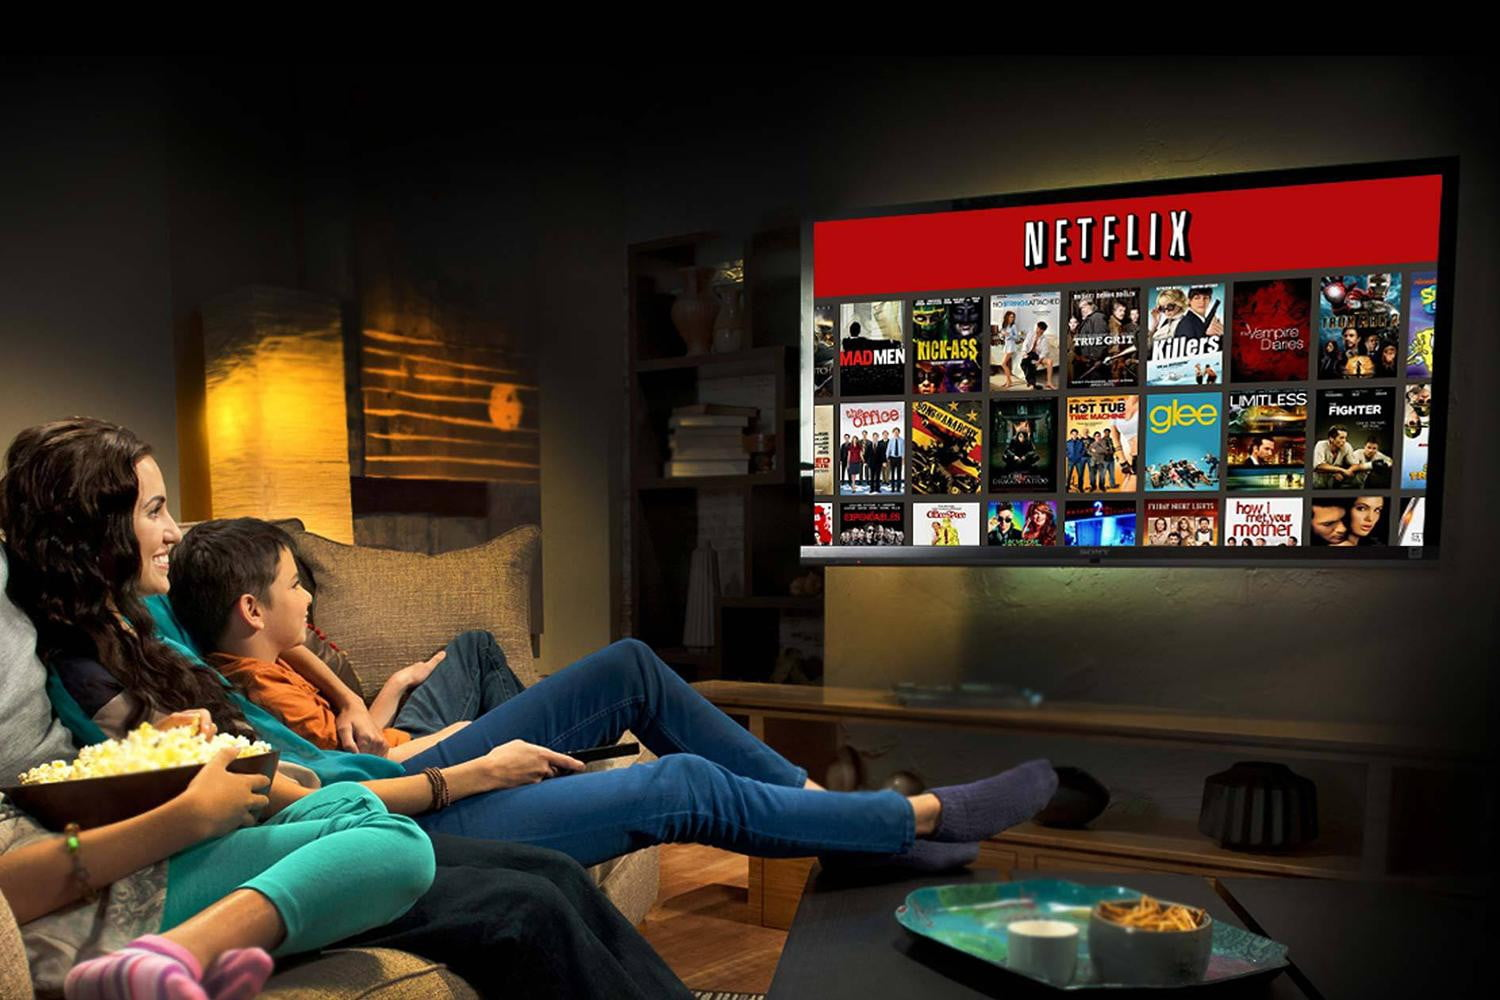 Survey Reveals Netflix is the Most Popular TV Viewing Platform in the US